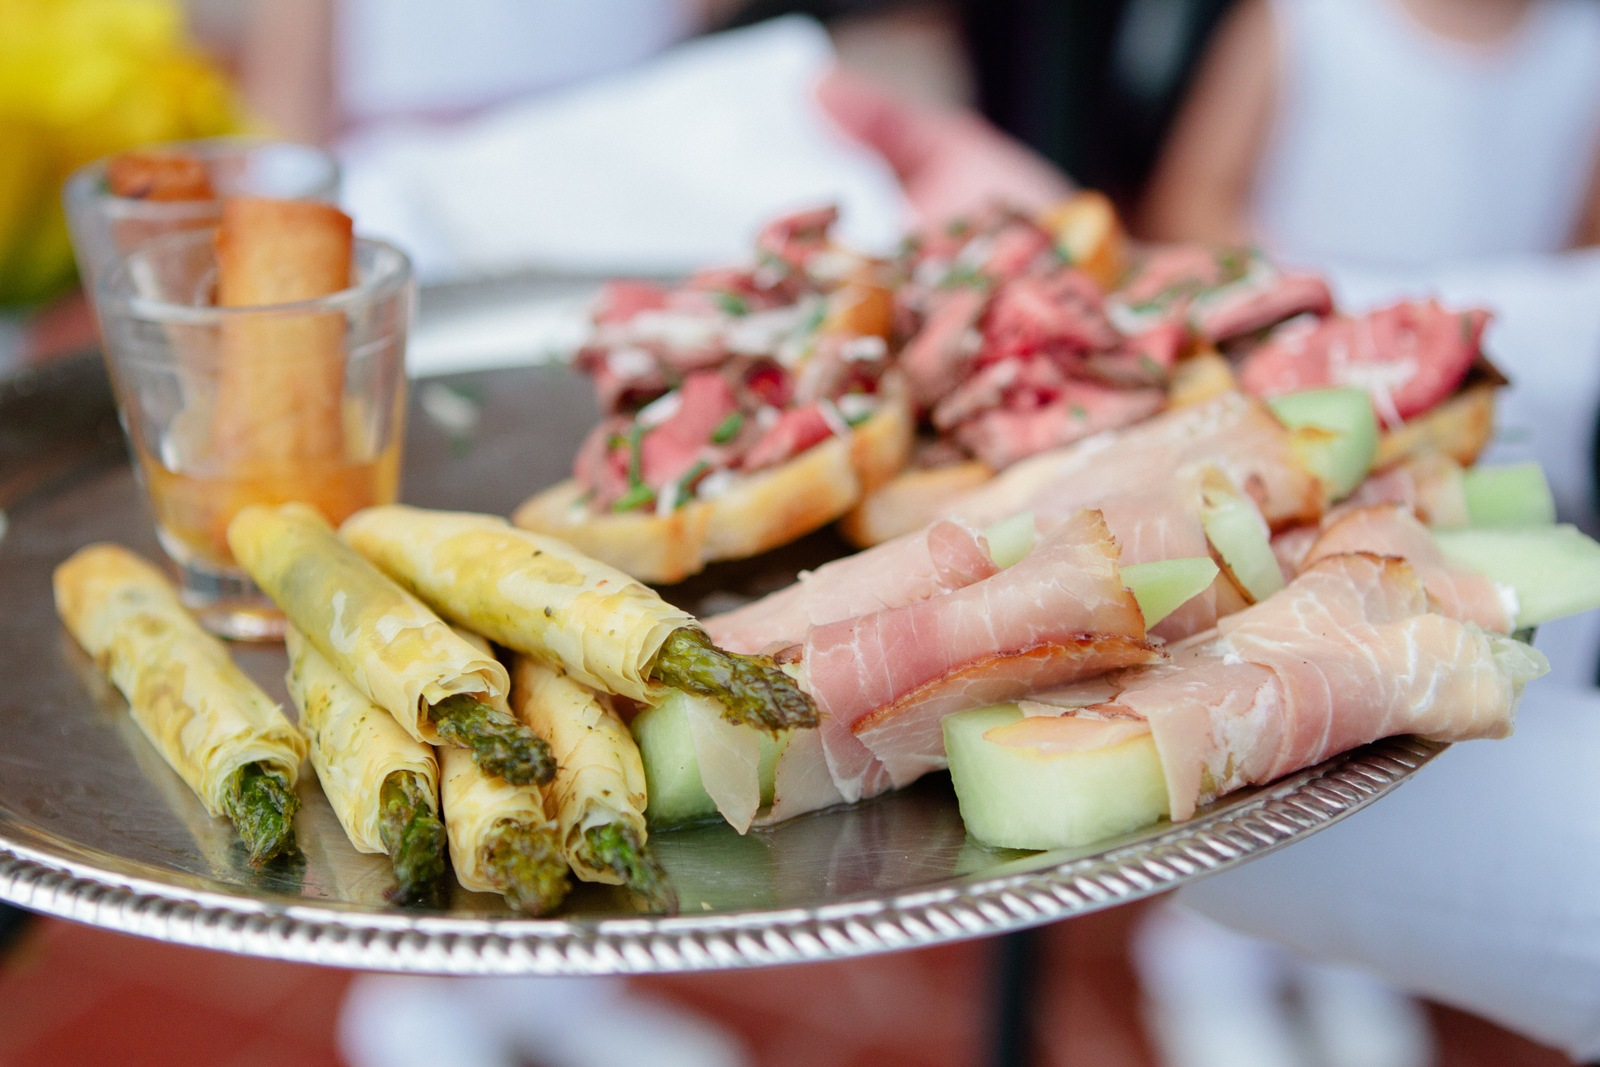 Wedding Brunch Reception - Vegetable Spring Roll Shooters with Duck Sauce, Beef Tenderloin Crostini, Filo-Wrapped Asparagus with Pesto, and Prosciutto-Wrapped Melon - Photo Courtesy of Brian Samuels Photography